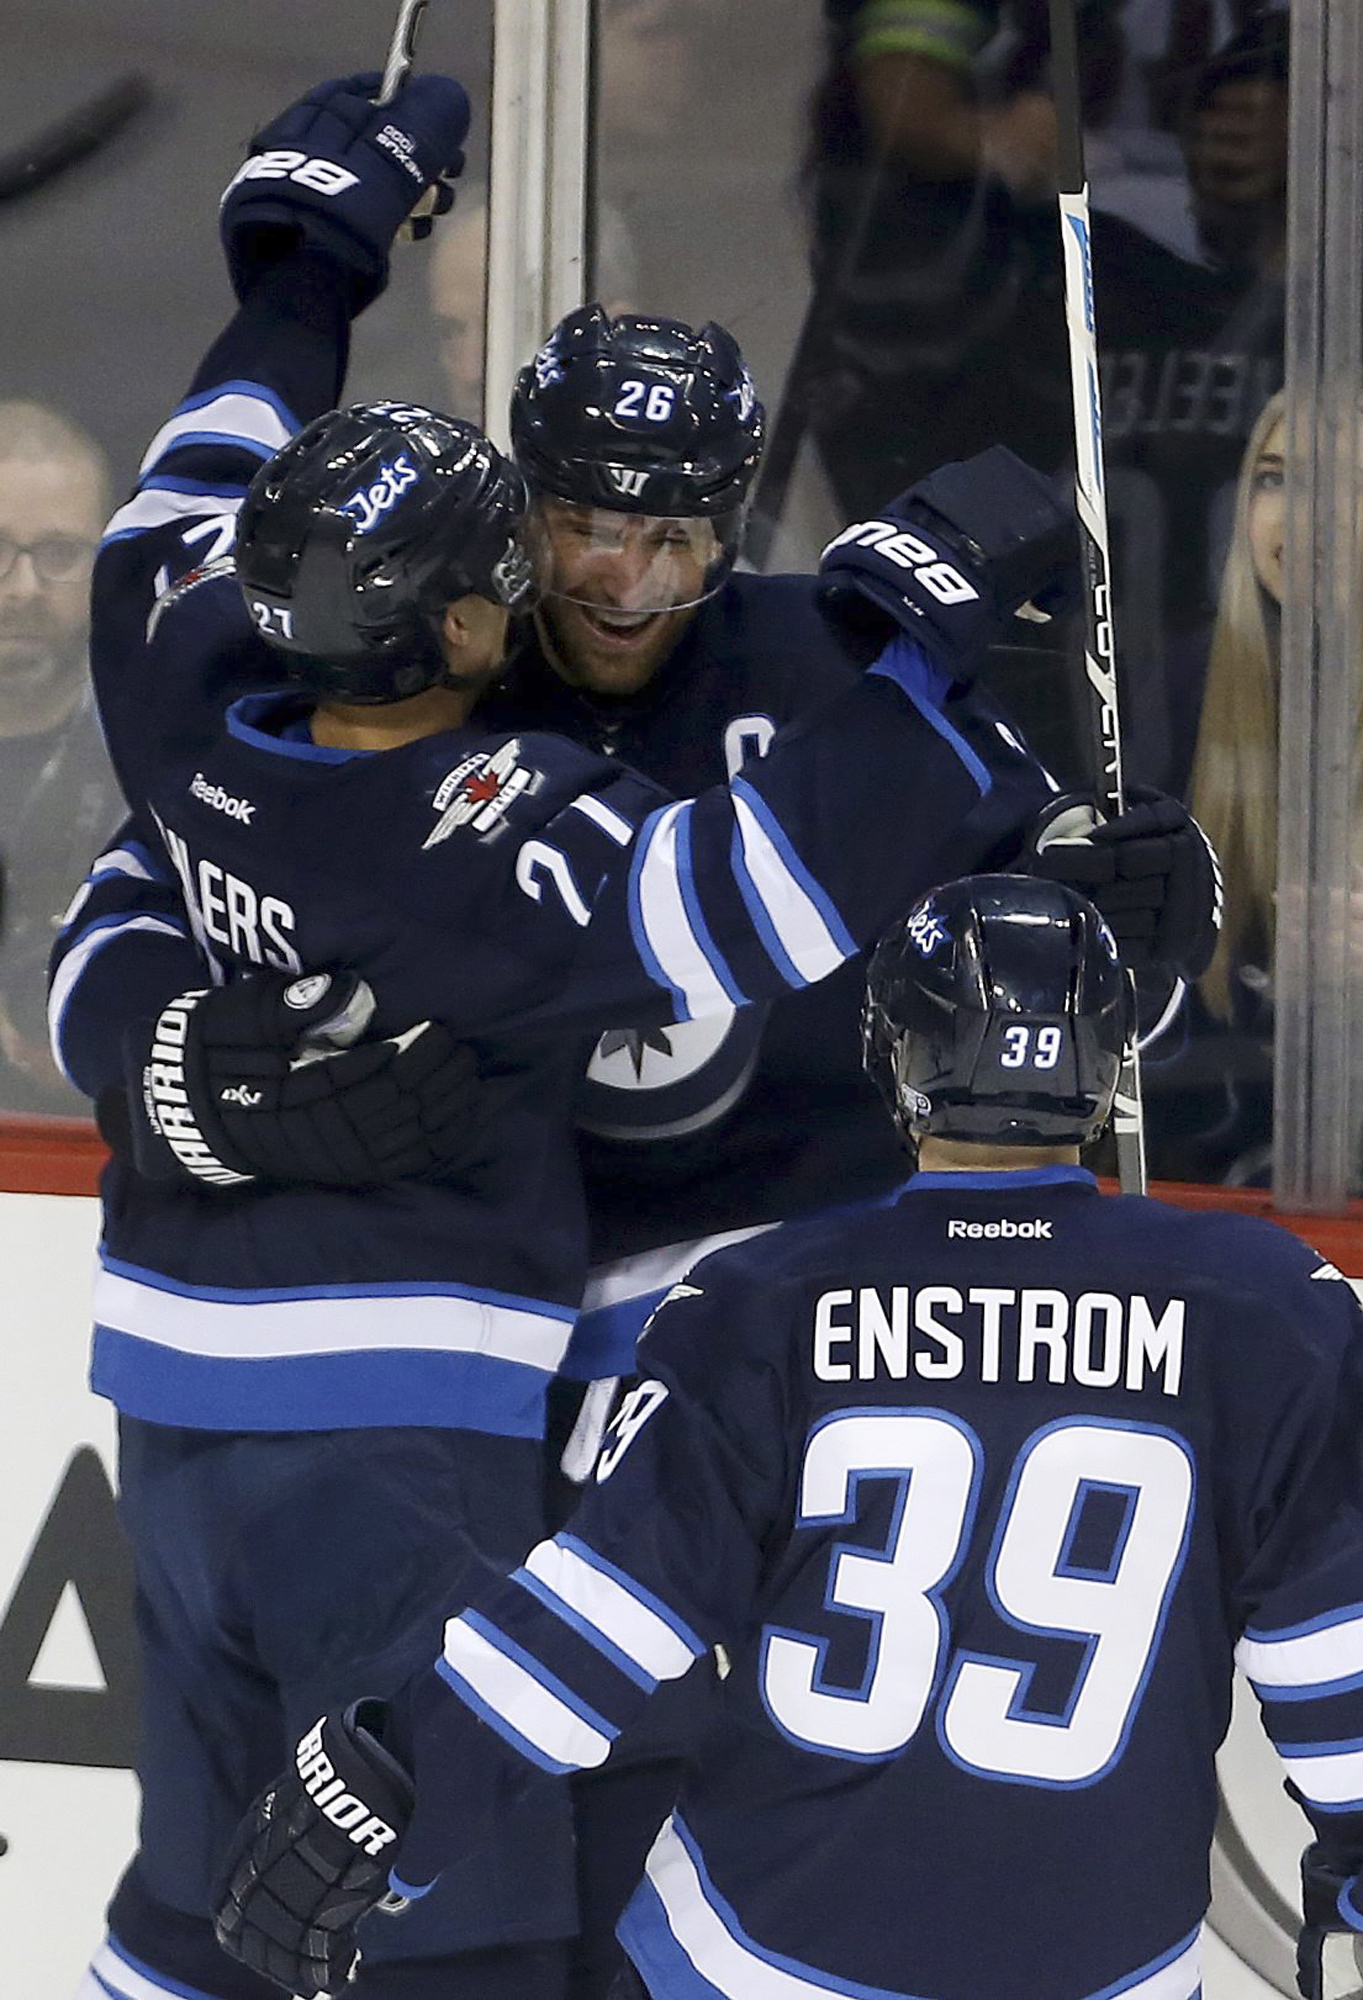 Winnipeg Jets' Nikolaj Ehlers (27), Blake Wheeler (26) and Toby Enstrom (39) celebrate after Ehlers scored his second goal of the period against the Arizona Coyotes in an NHL hockey game Tuesday, Jan 26, 2016, in Winnipeg, Manitoba. (Trevor Hagan/The Cana